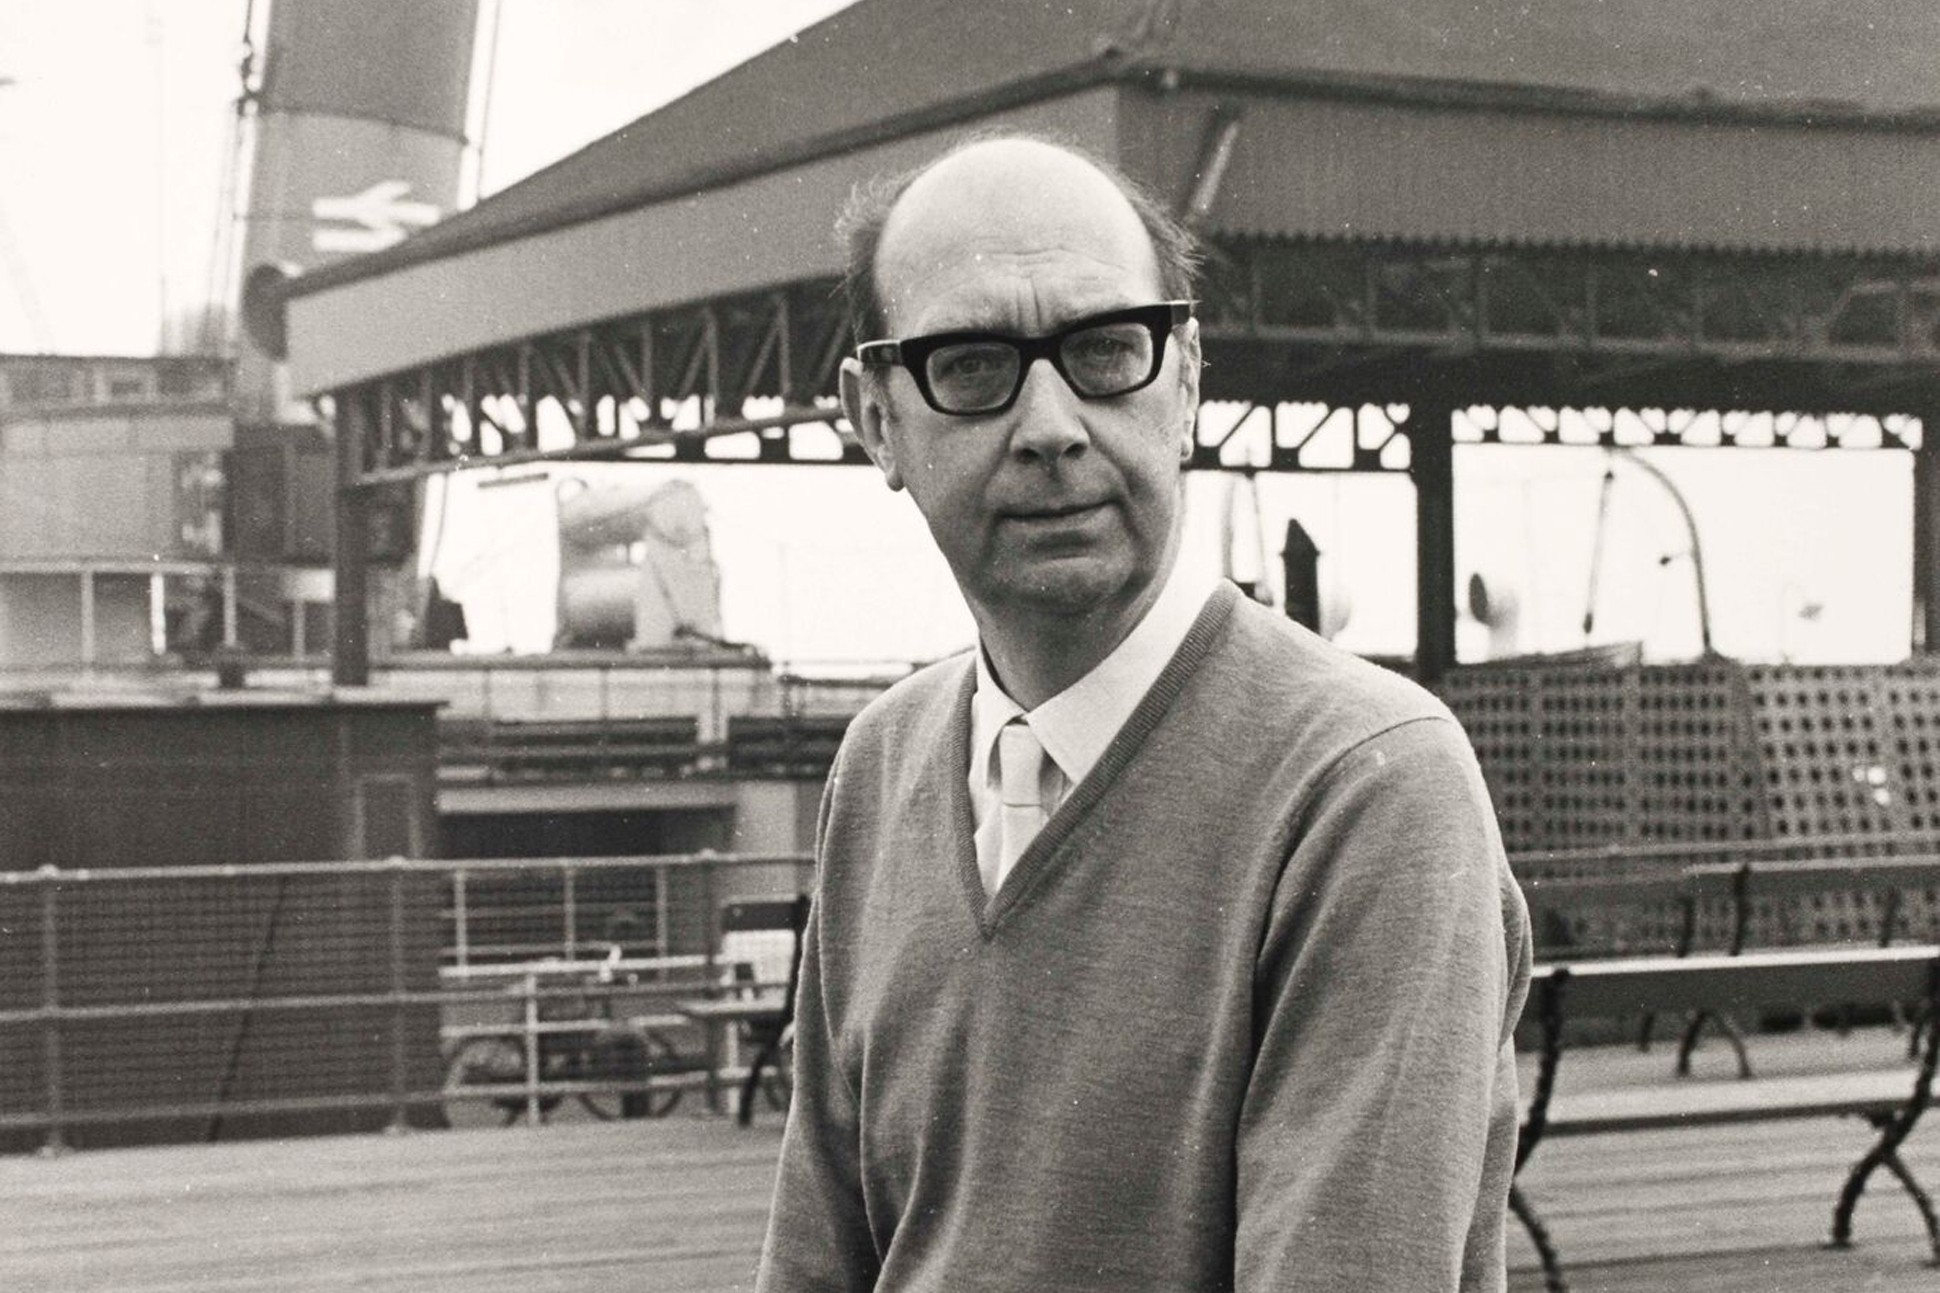 Image of Philip Larkin